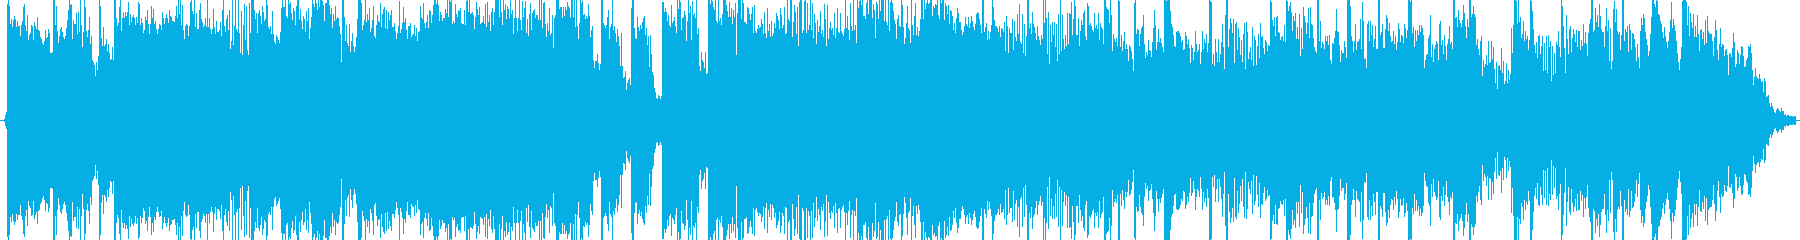 It is a Funky appearance system jingle.'s reproduced waveform